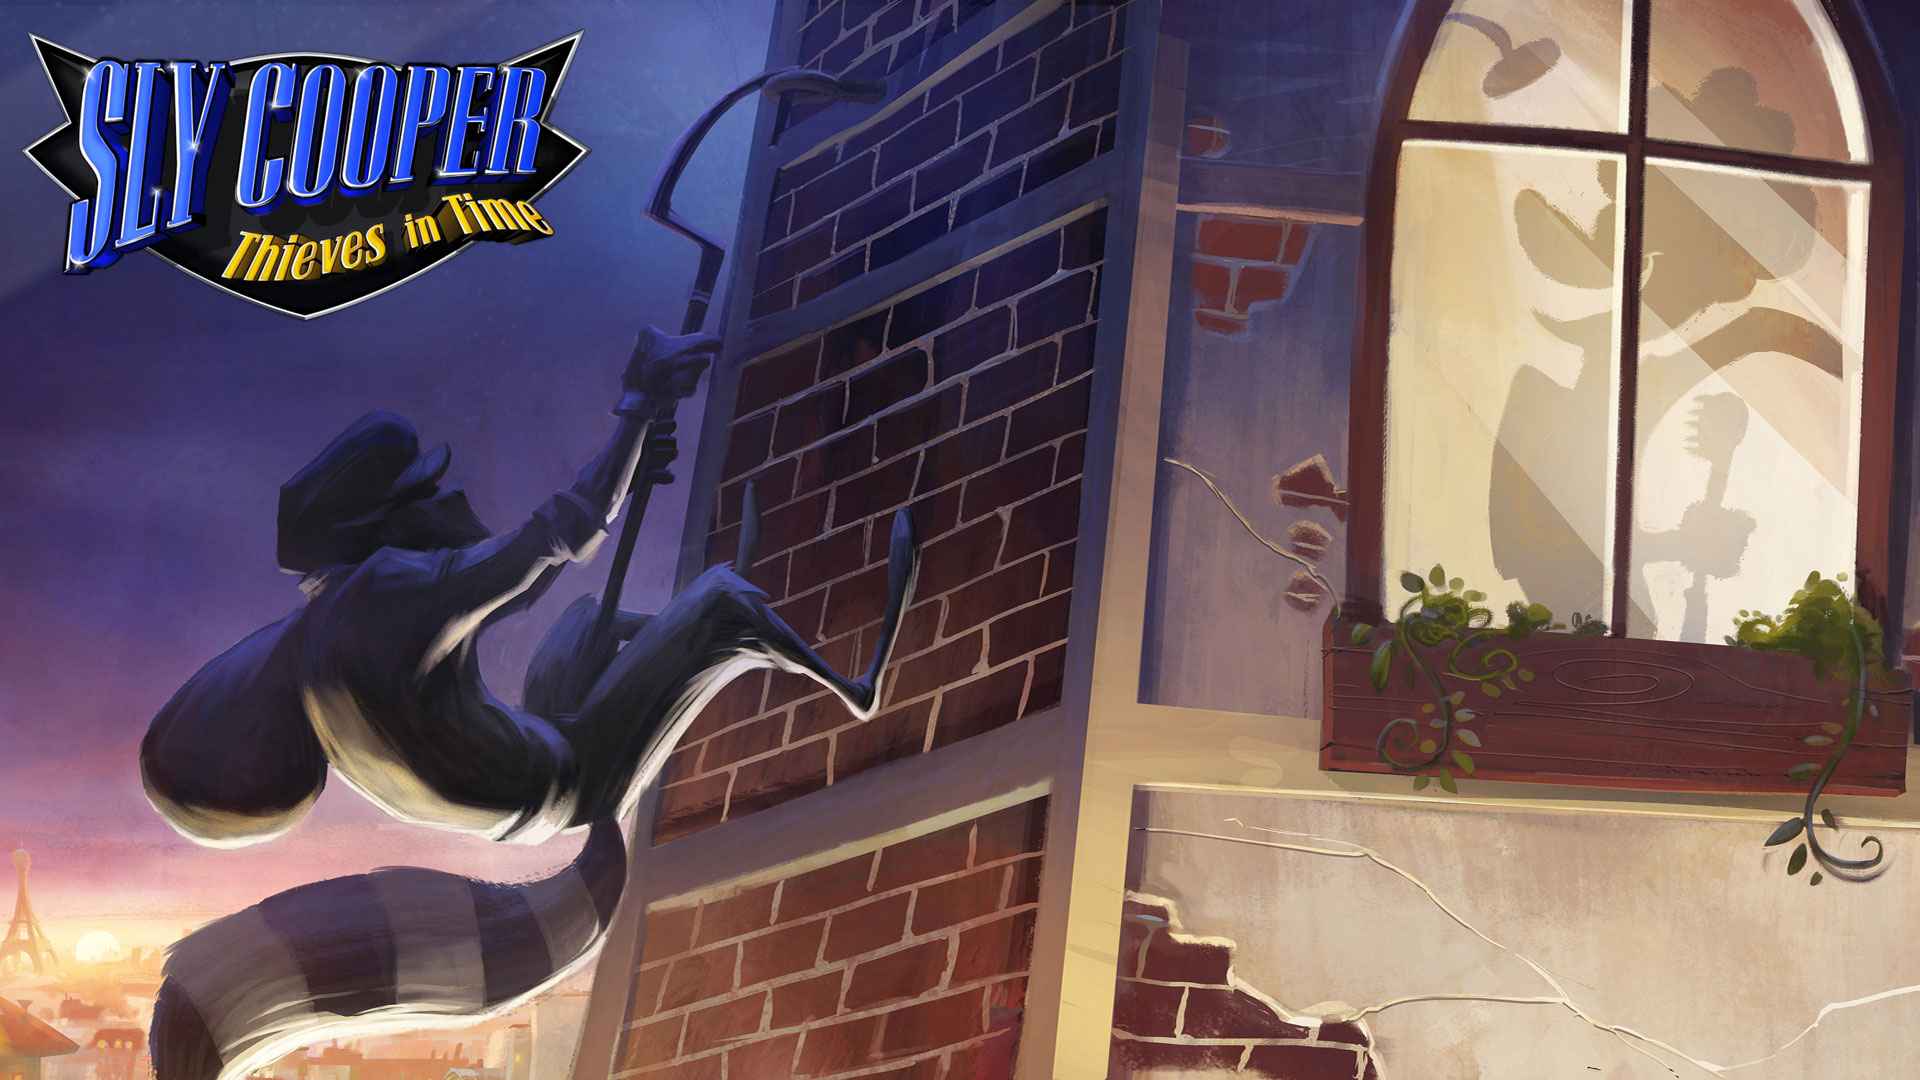 Sly Cooper Thieves in Time Wallpapers in HD Page 3 1920x1080